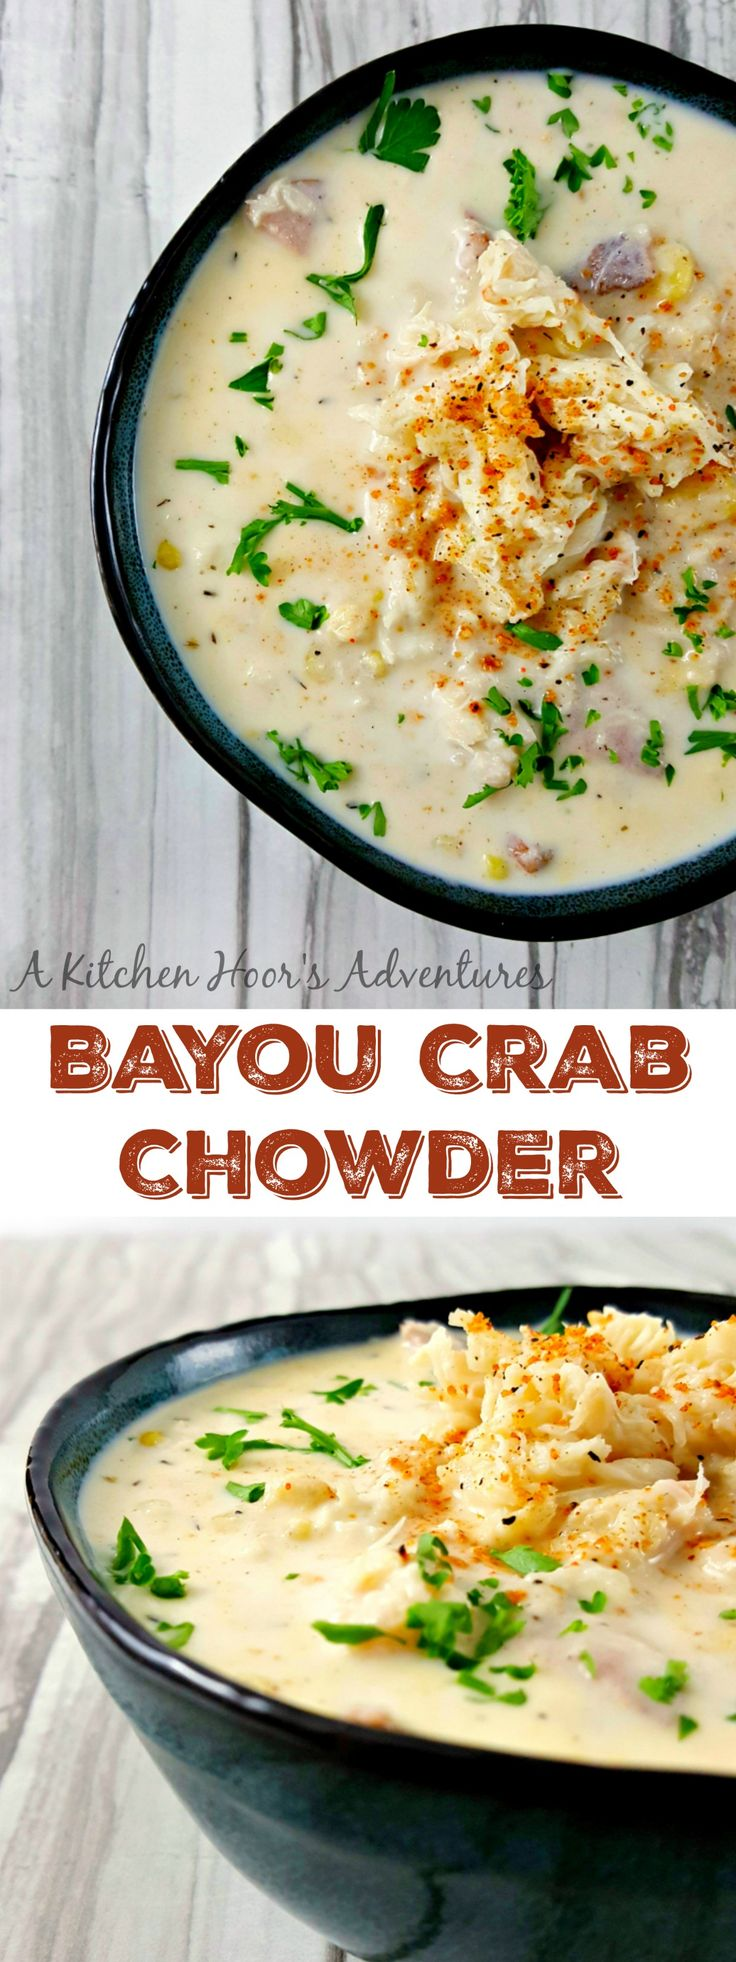 Bayou Crab Chowder is bowl of Cajun flavored deliciousness. There's hearty potatoes, sweet corn, smoky sausage, kicked up Cajun spices, and finally succulent crab in this seafood Cajun party in a bowl.